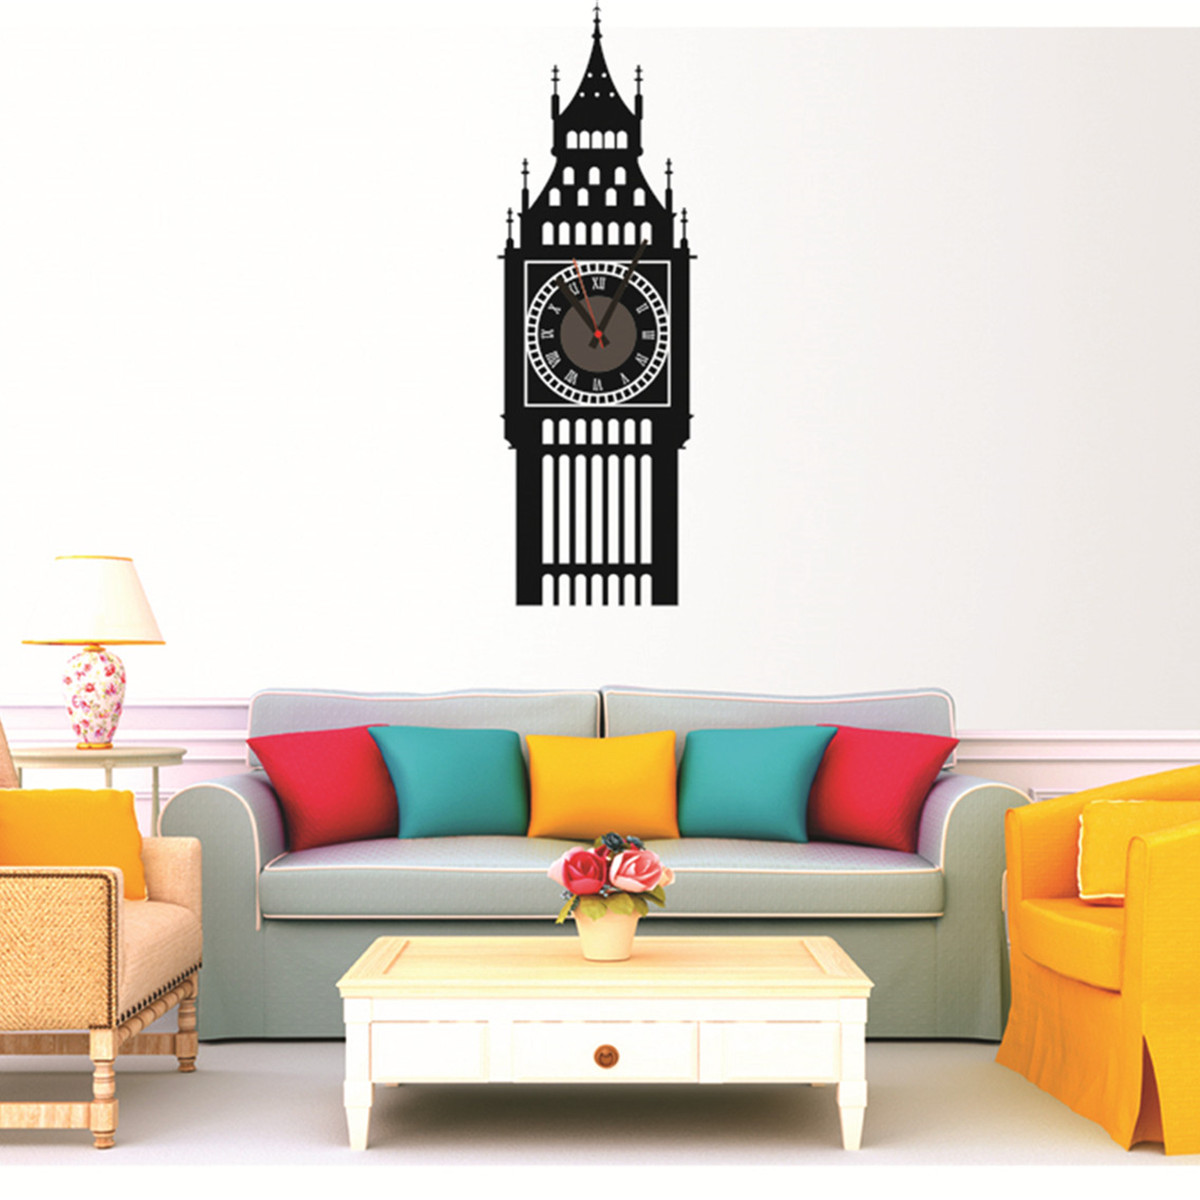 Wall clock living room diy big ben home office room decor for Room decor 3d